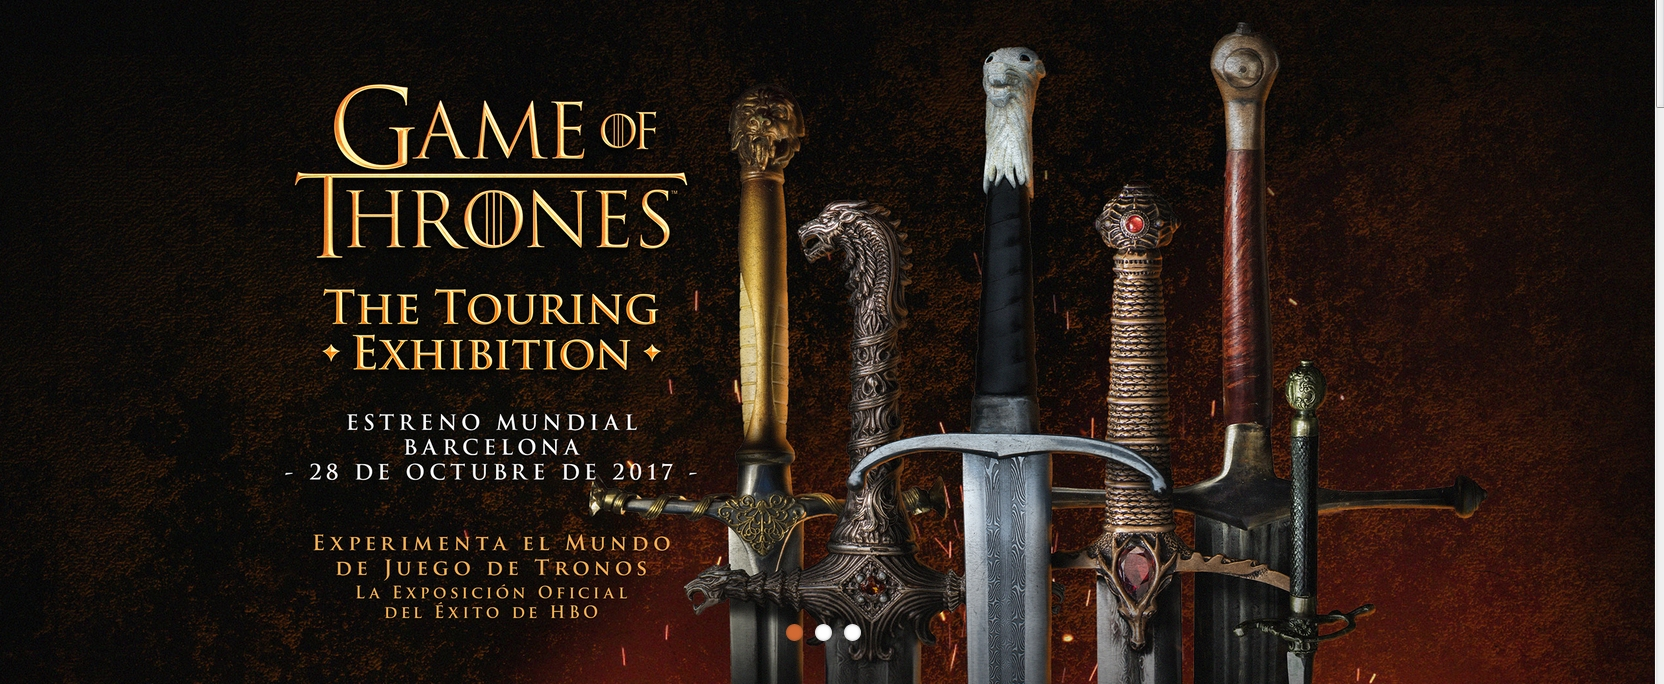 game of thrones exhibition barcelona expo